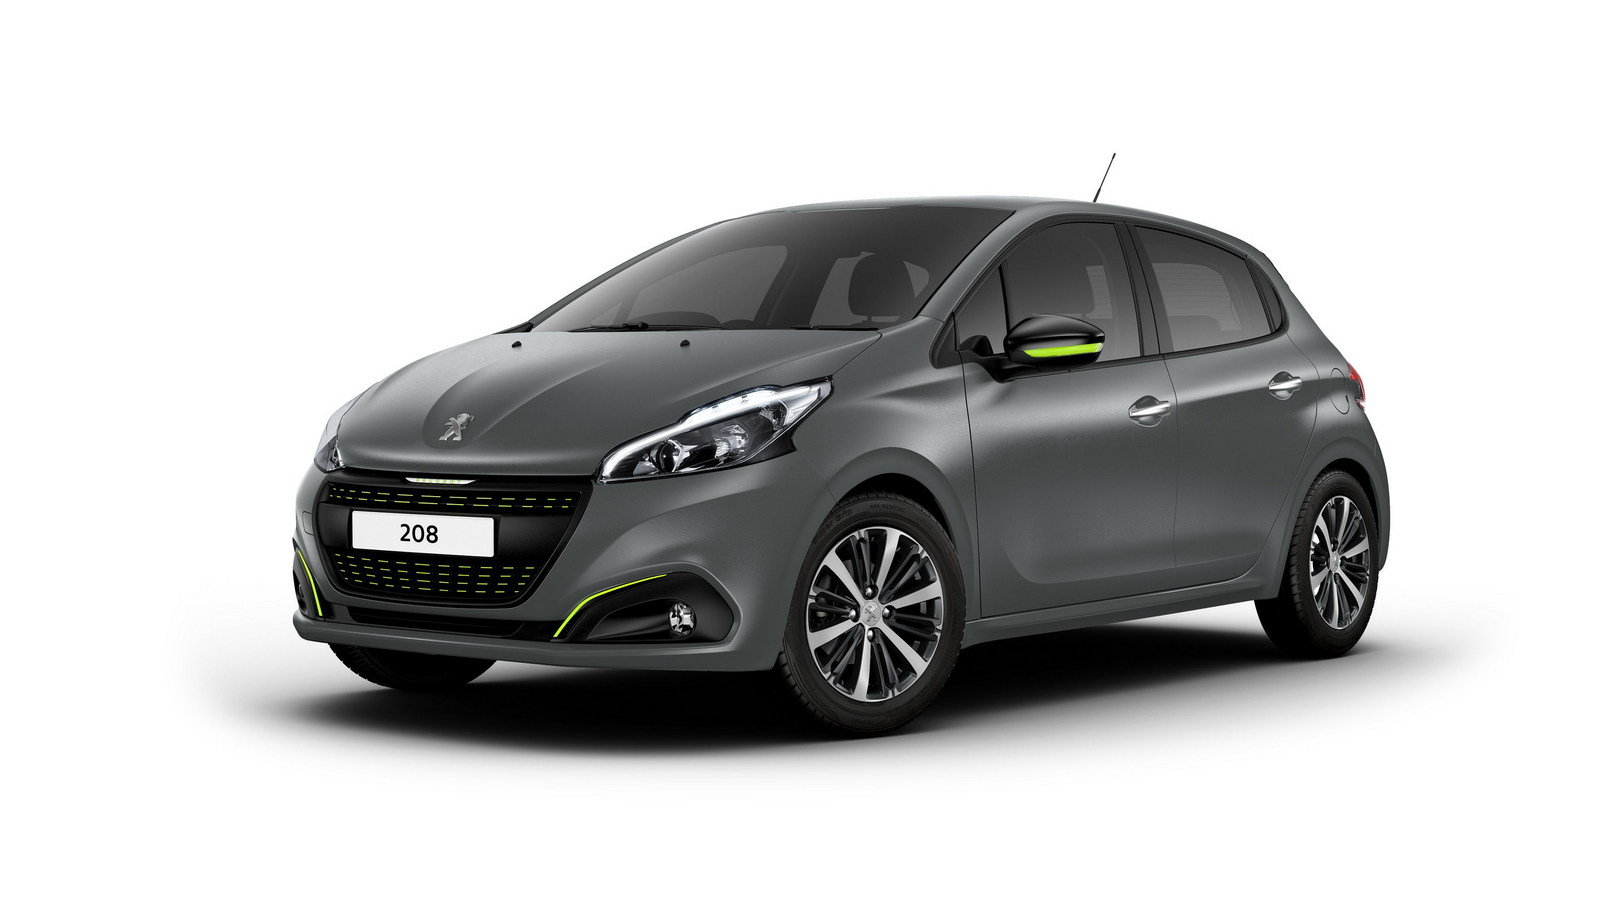 2016 peugeot 208 xs special edition picture 671300 car review top speed. Black Bedroom Furniture Sets. Home Design Ideas